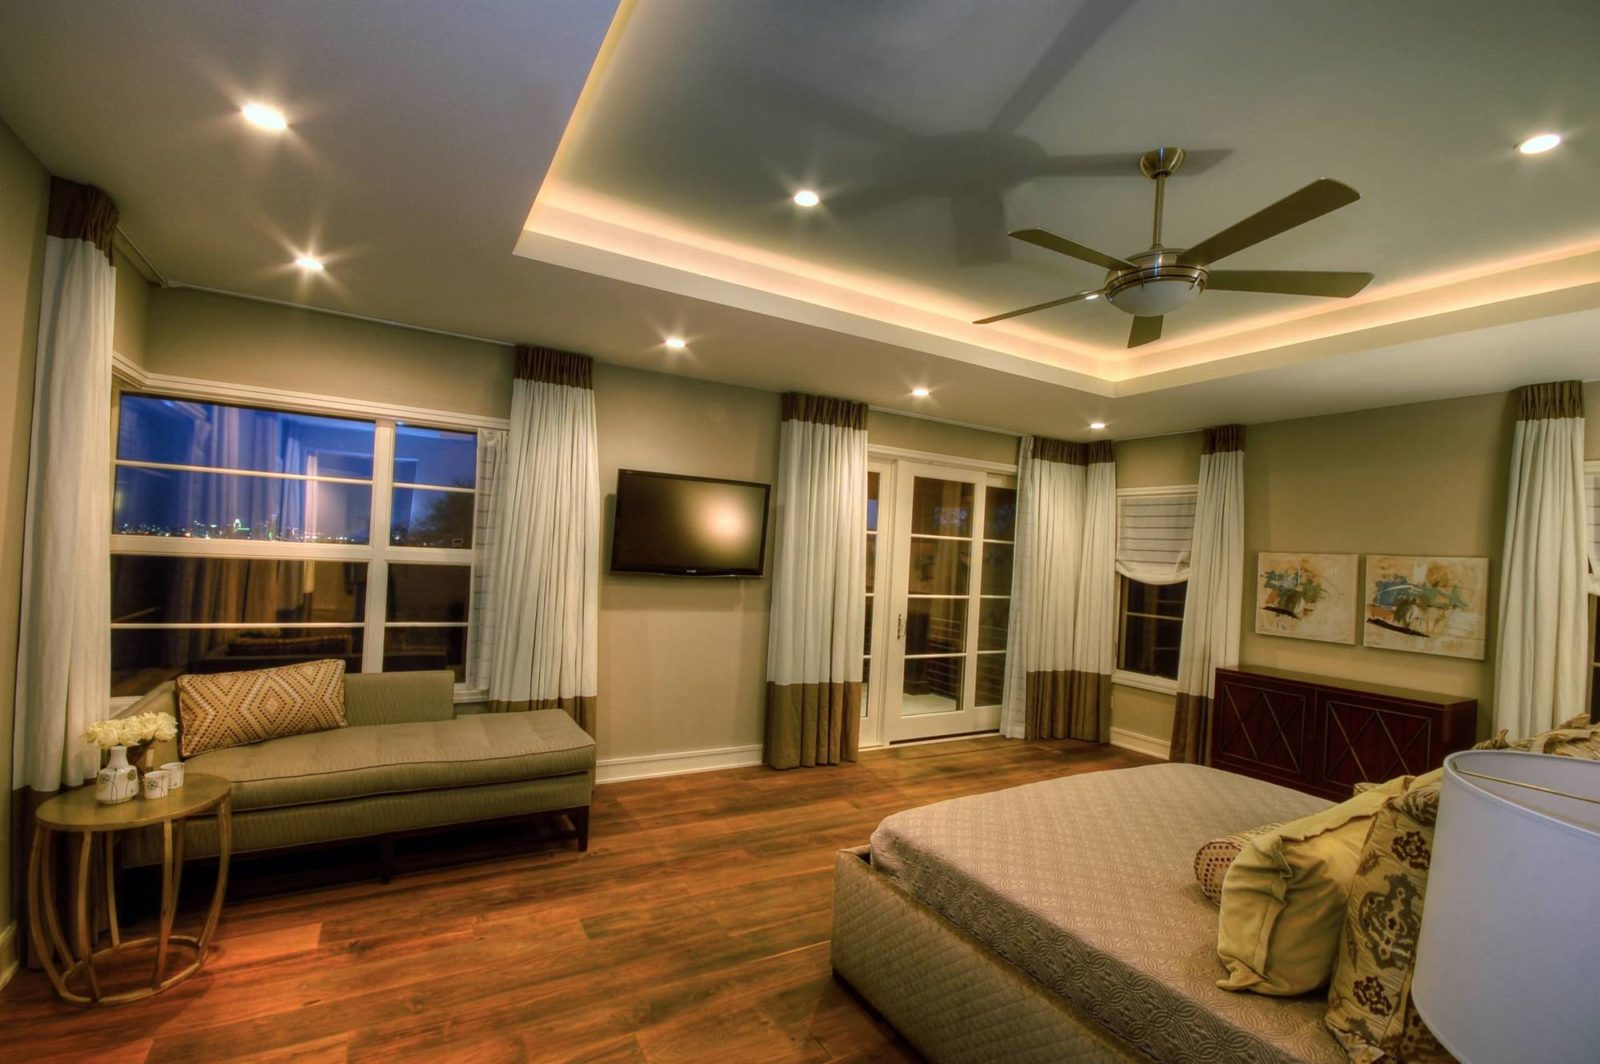 bedroom lighting ideas ceiling. Indirect Ceiling Lighting. Lighting F Bedroom Ideas O